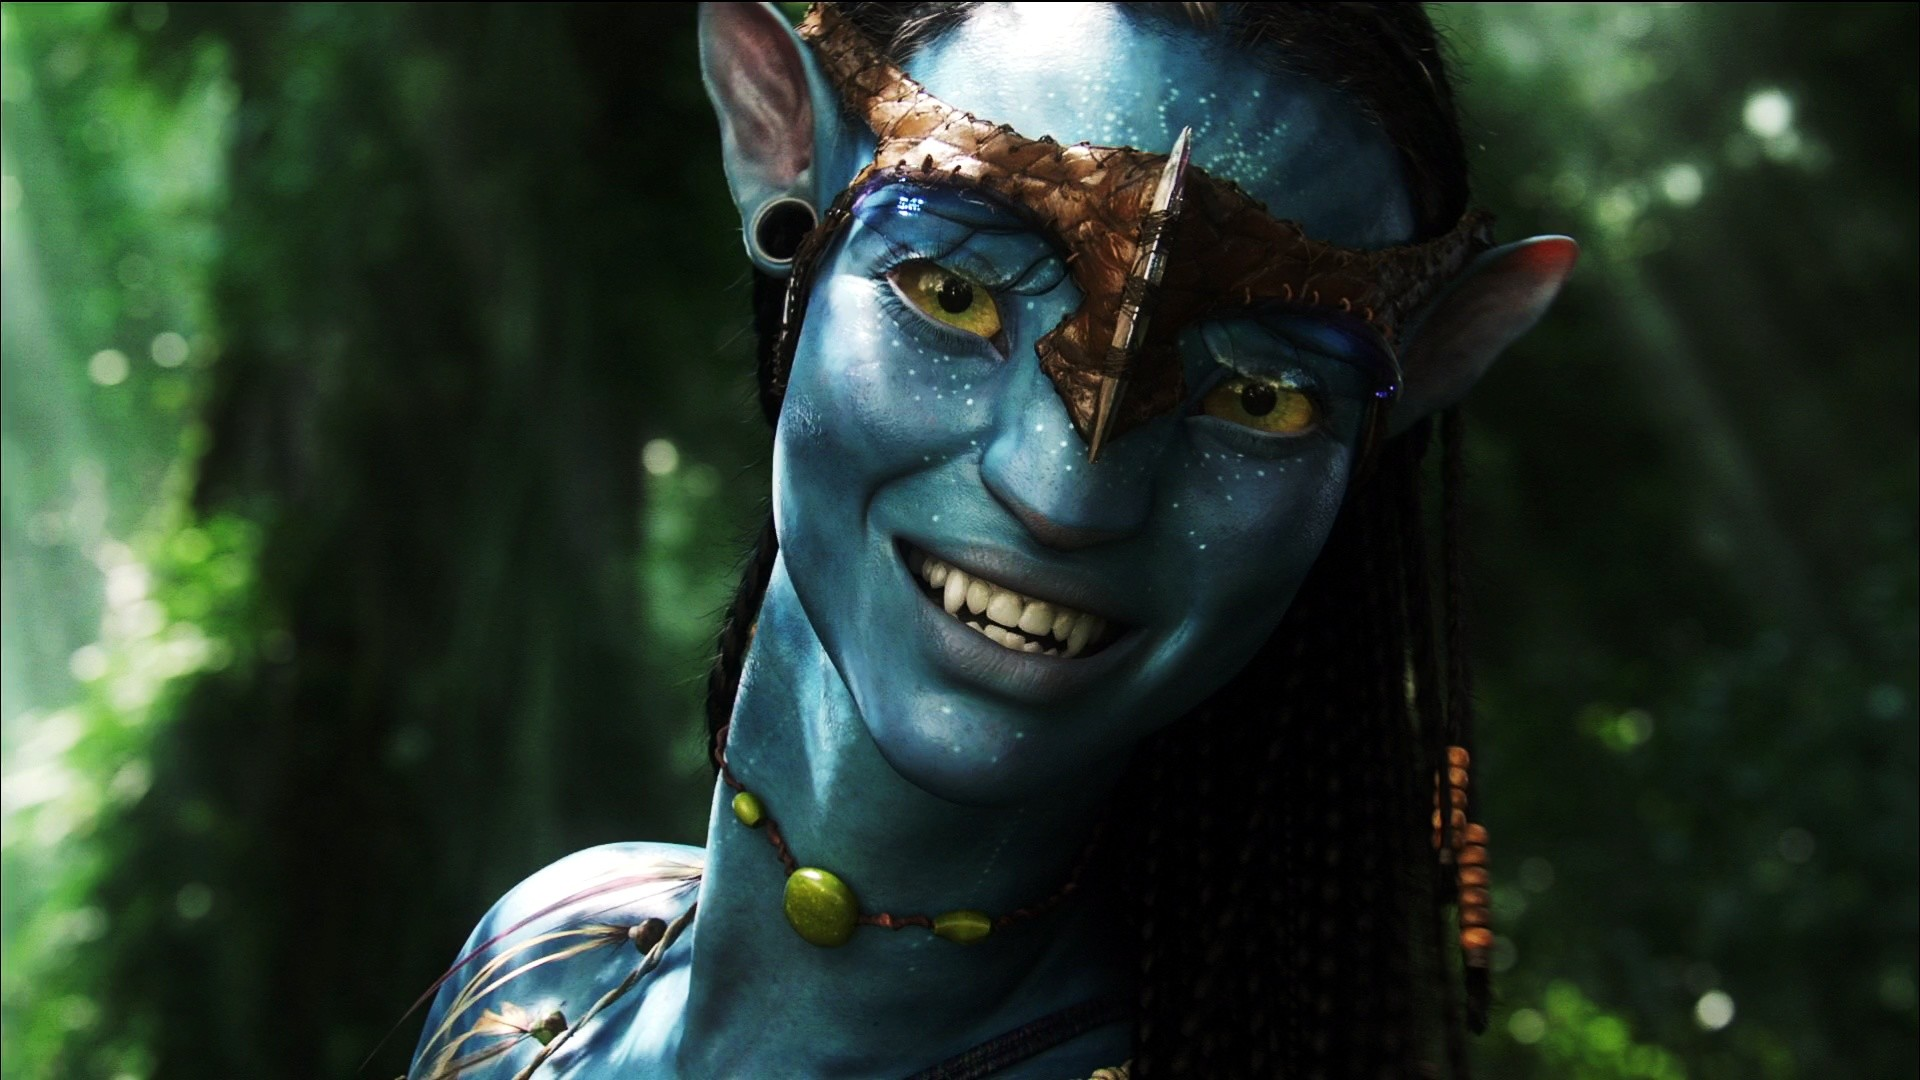 avatar hd wallpapers 1080p (65+ images)